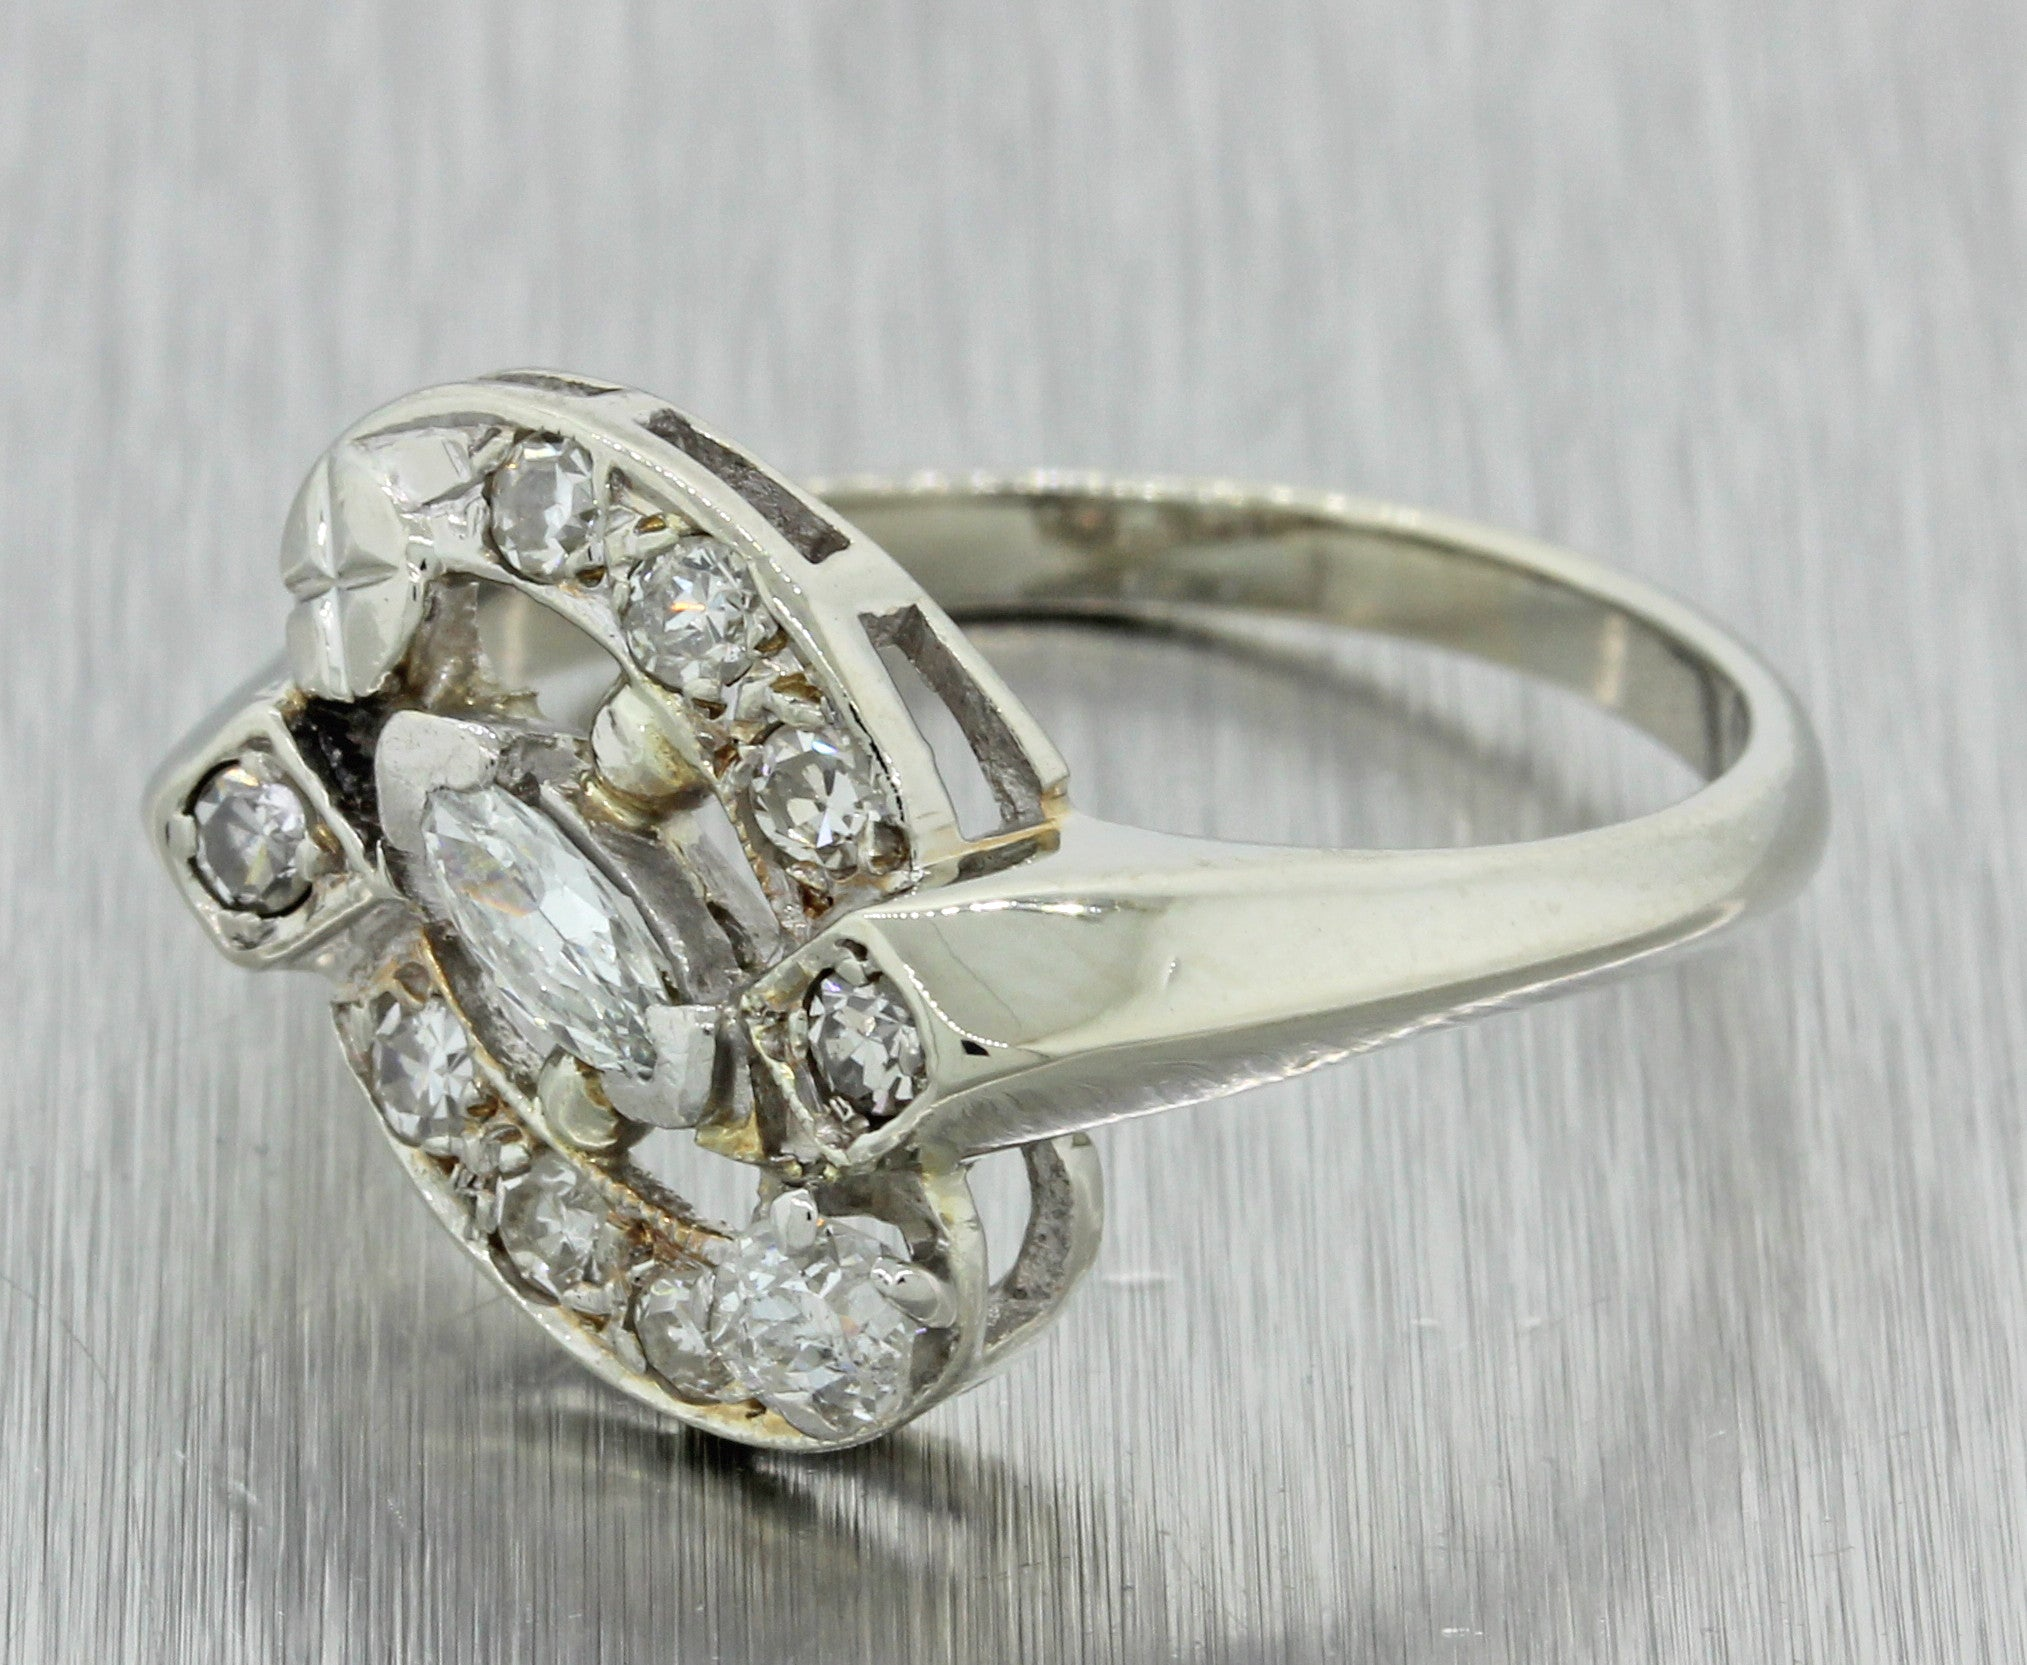 1930s Antique Art Deco Estate 14k Solid White Gold .52ctw Diamond Cluster Ring